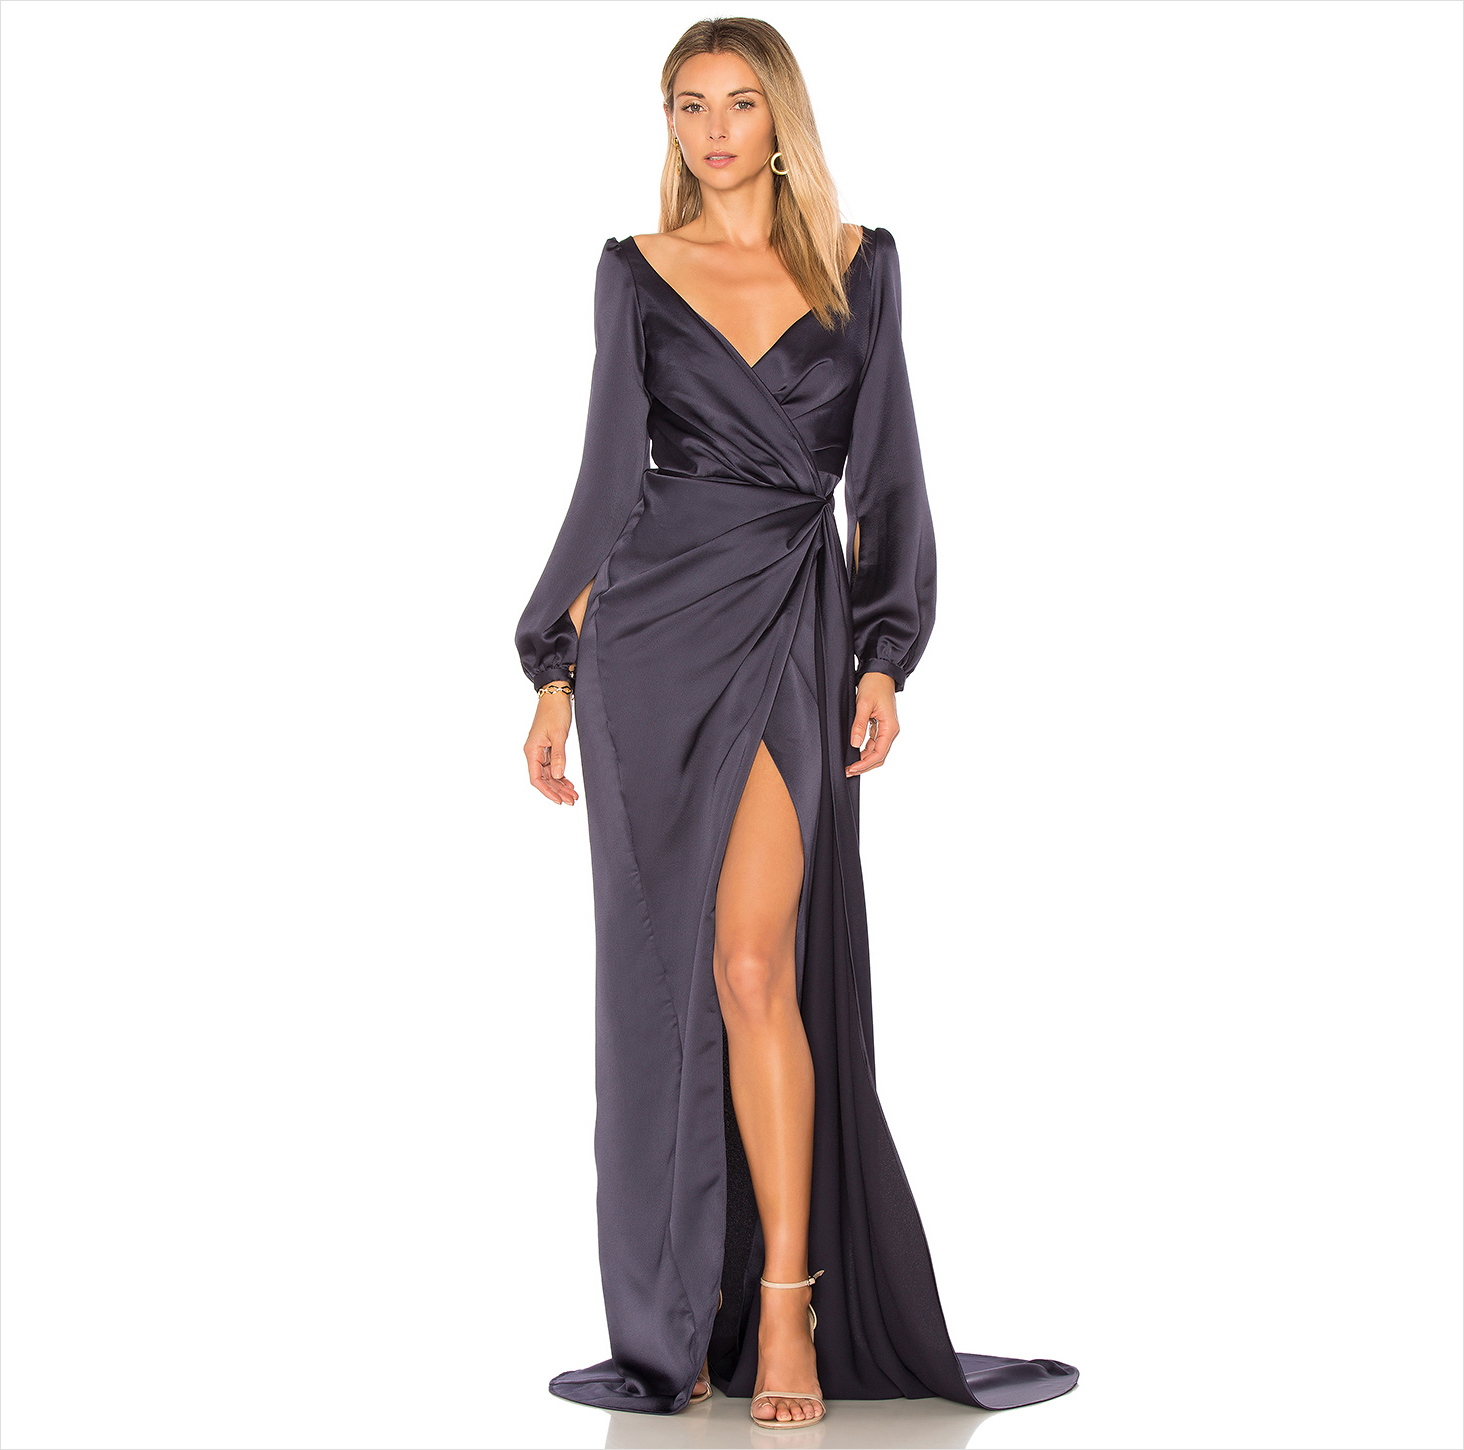 Long Gowns For Wedding Guests: Wedding Guest Dress Ideas: Long Sleeve Dresses